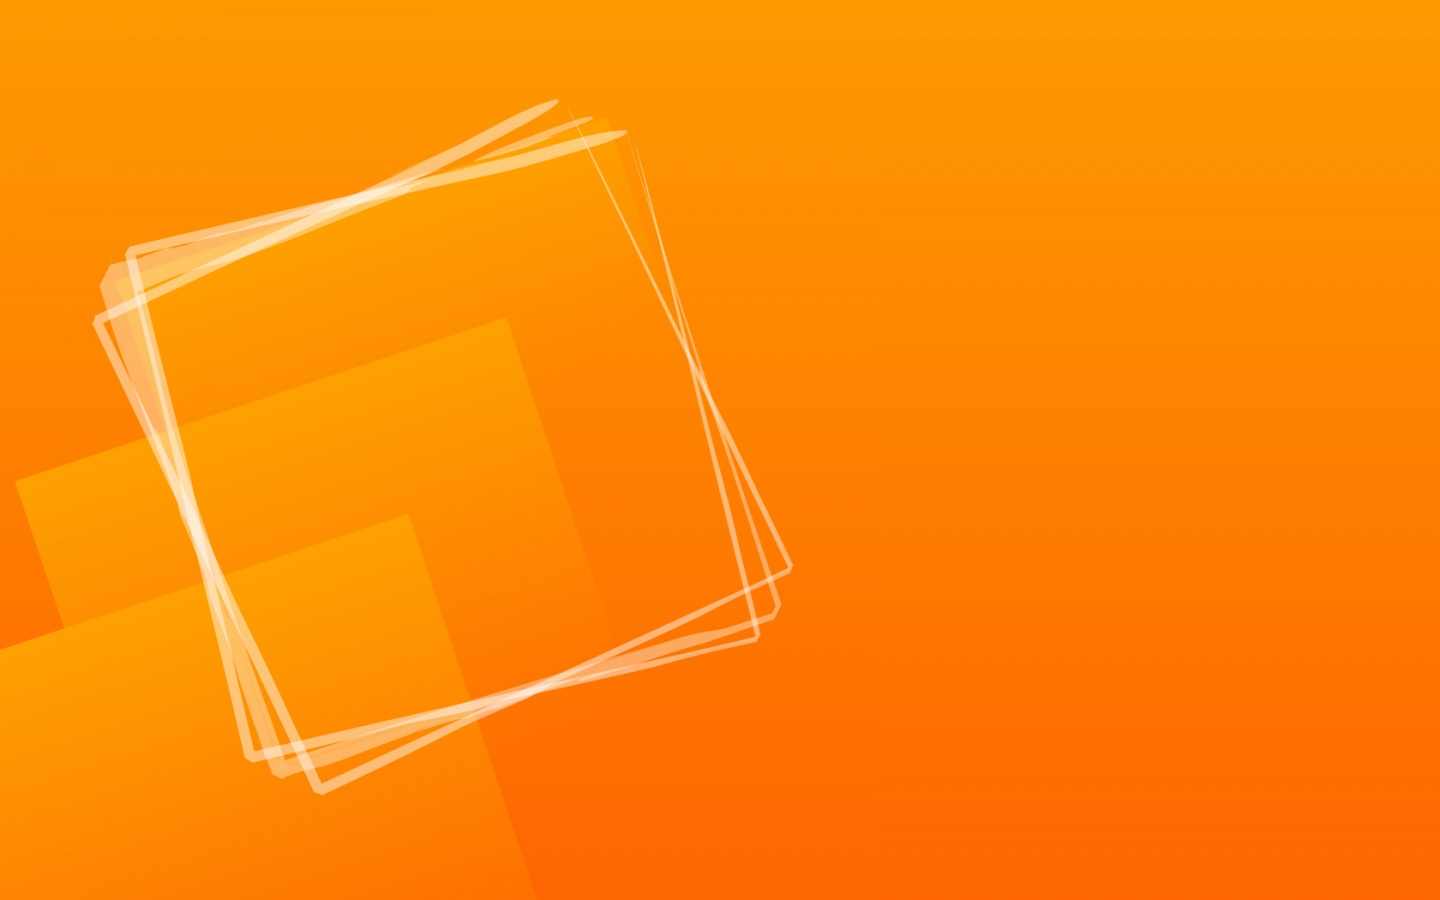 1440x900 Orange square desktop PC and Mac wallpaper 1440x900